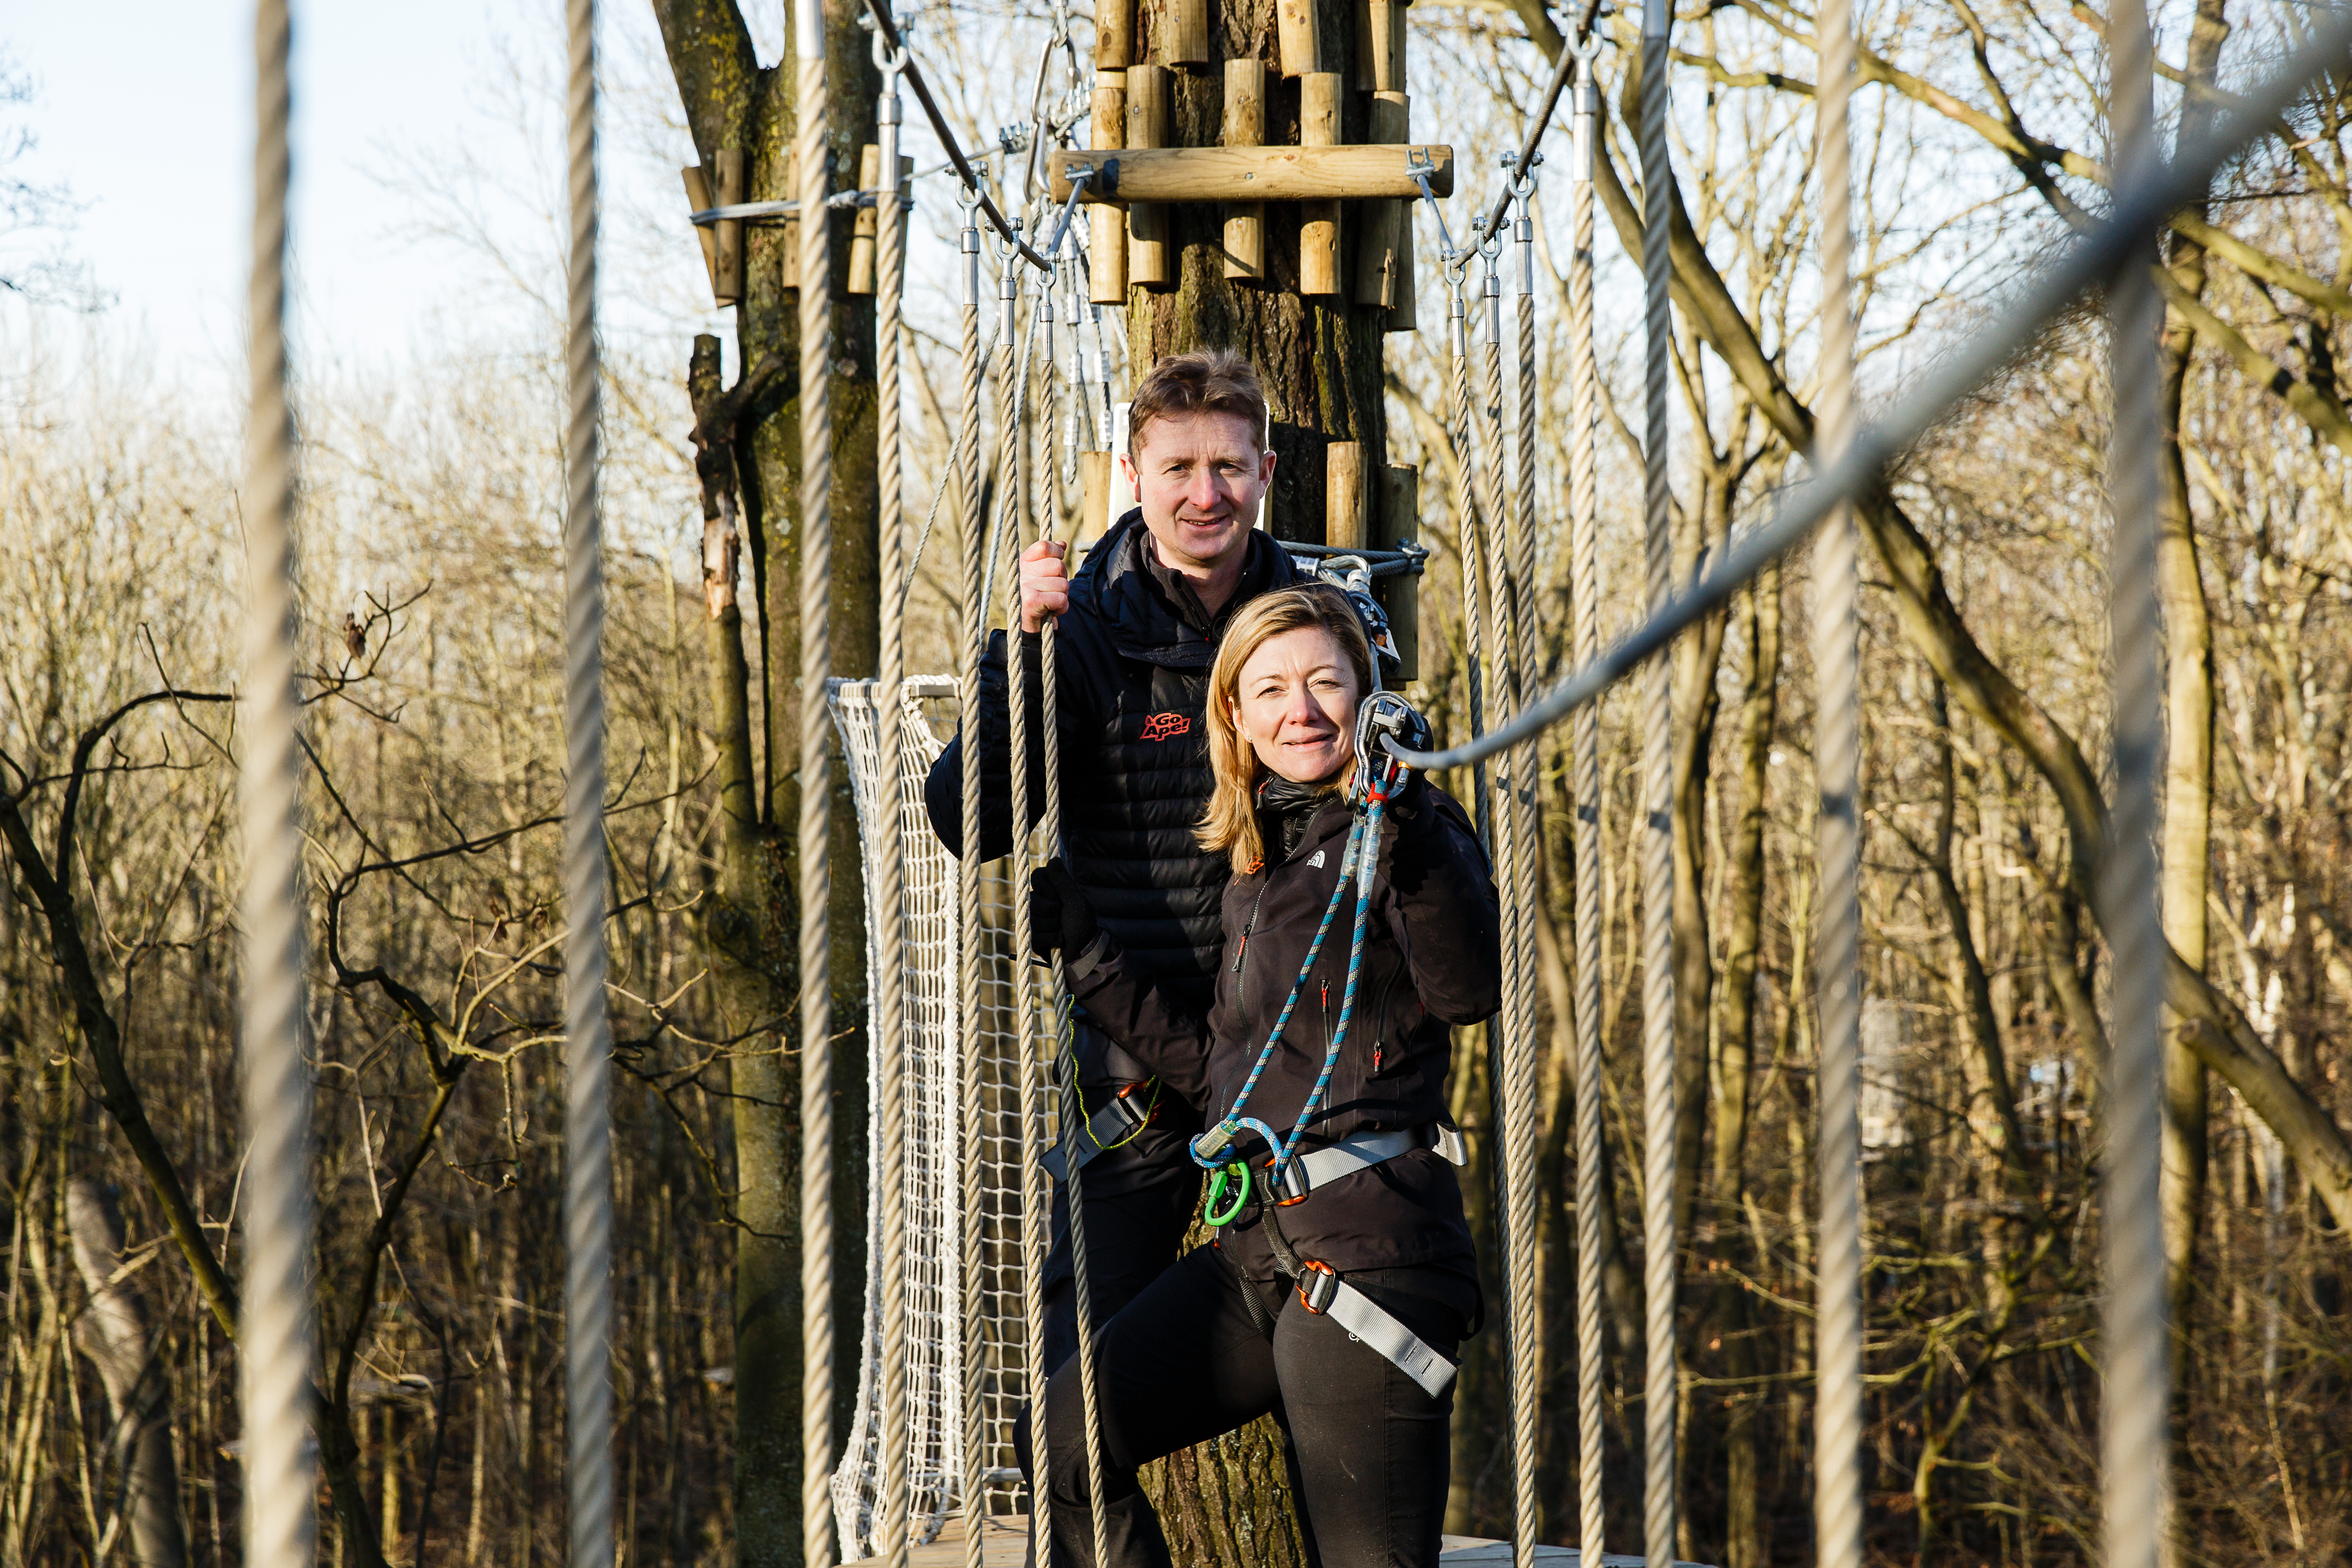 Tris and Becs Mayhew on a Go Ape Course